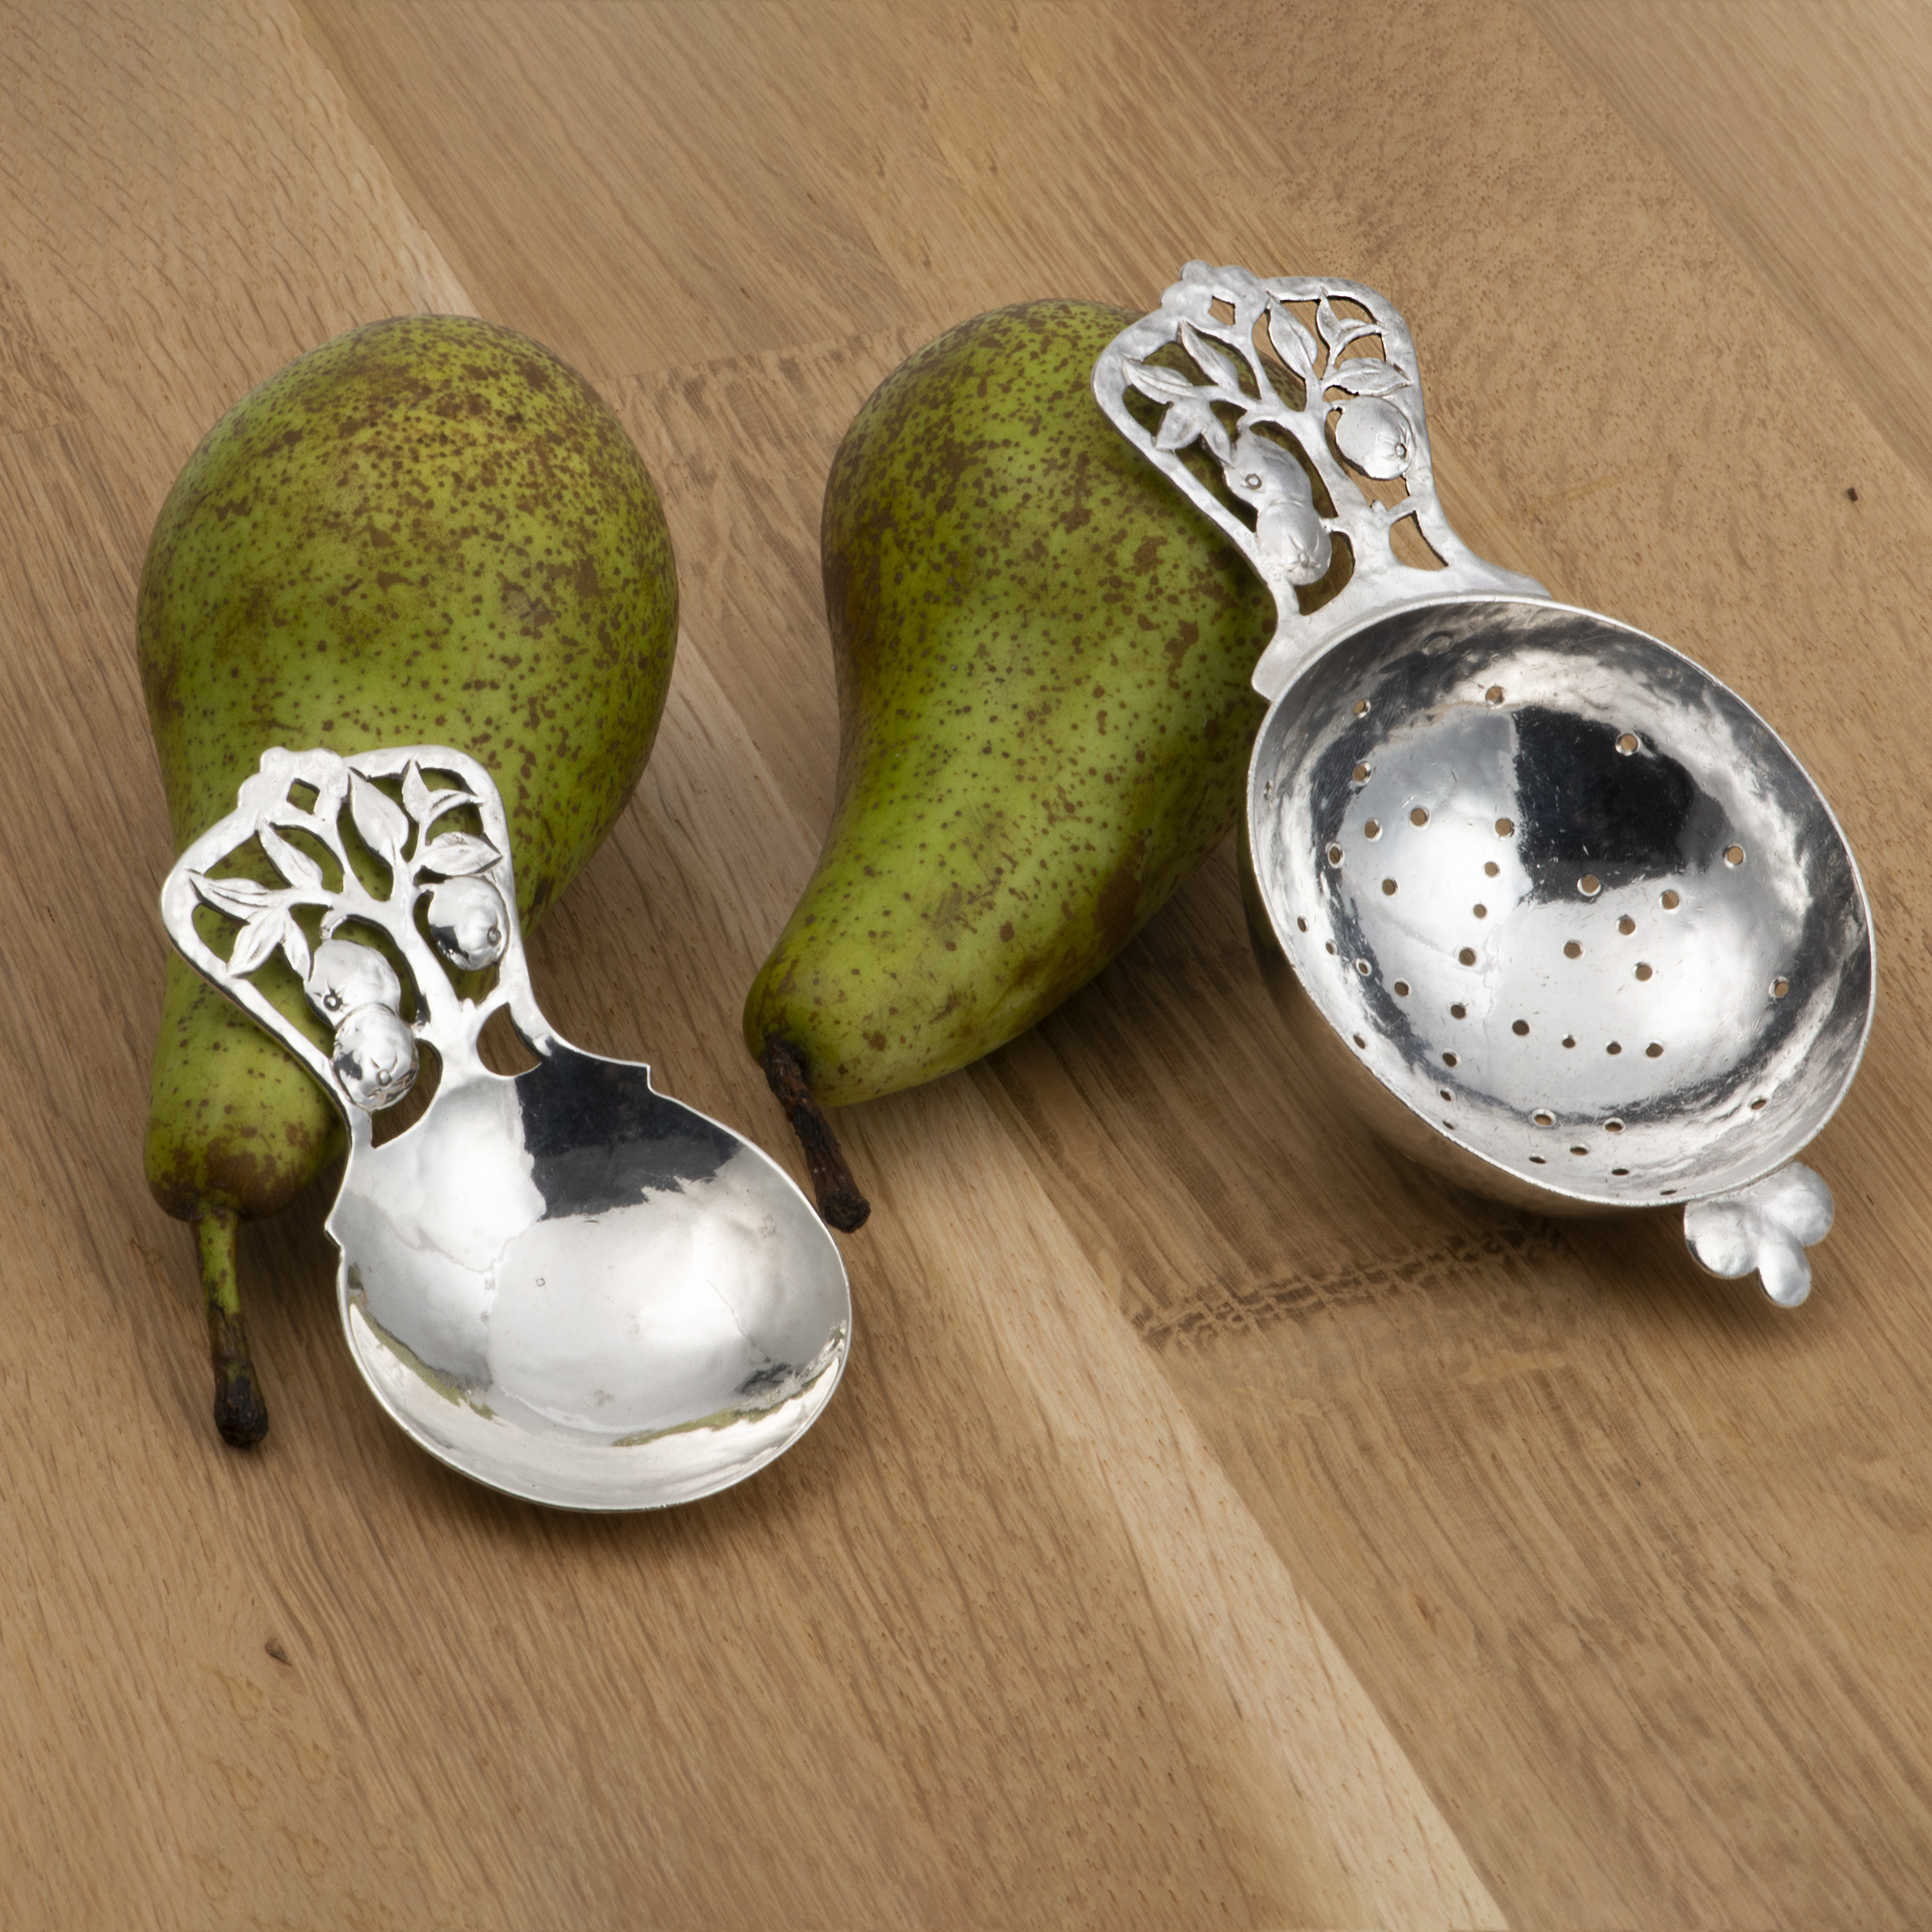 A Caddy Spoon And Tea Strainer By Bernard Instone. Ideal For Fruit Tea.